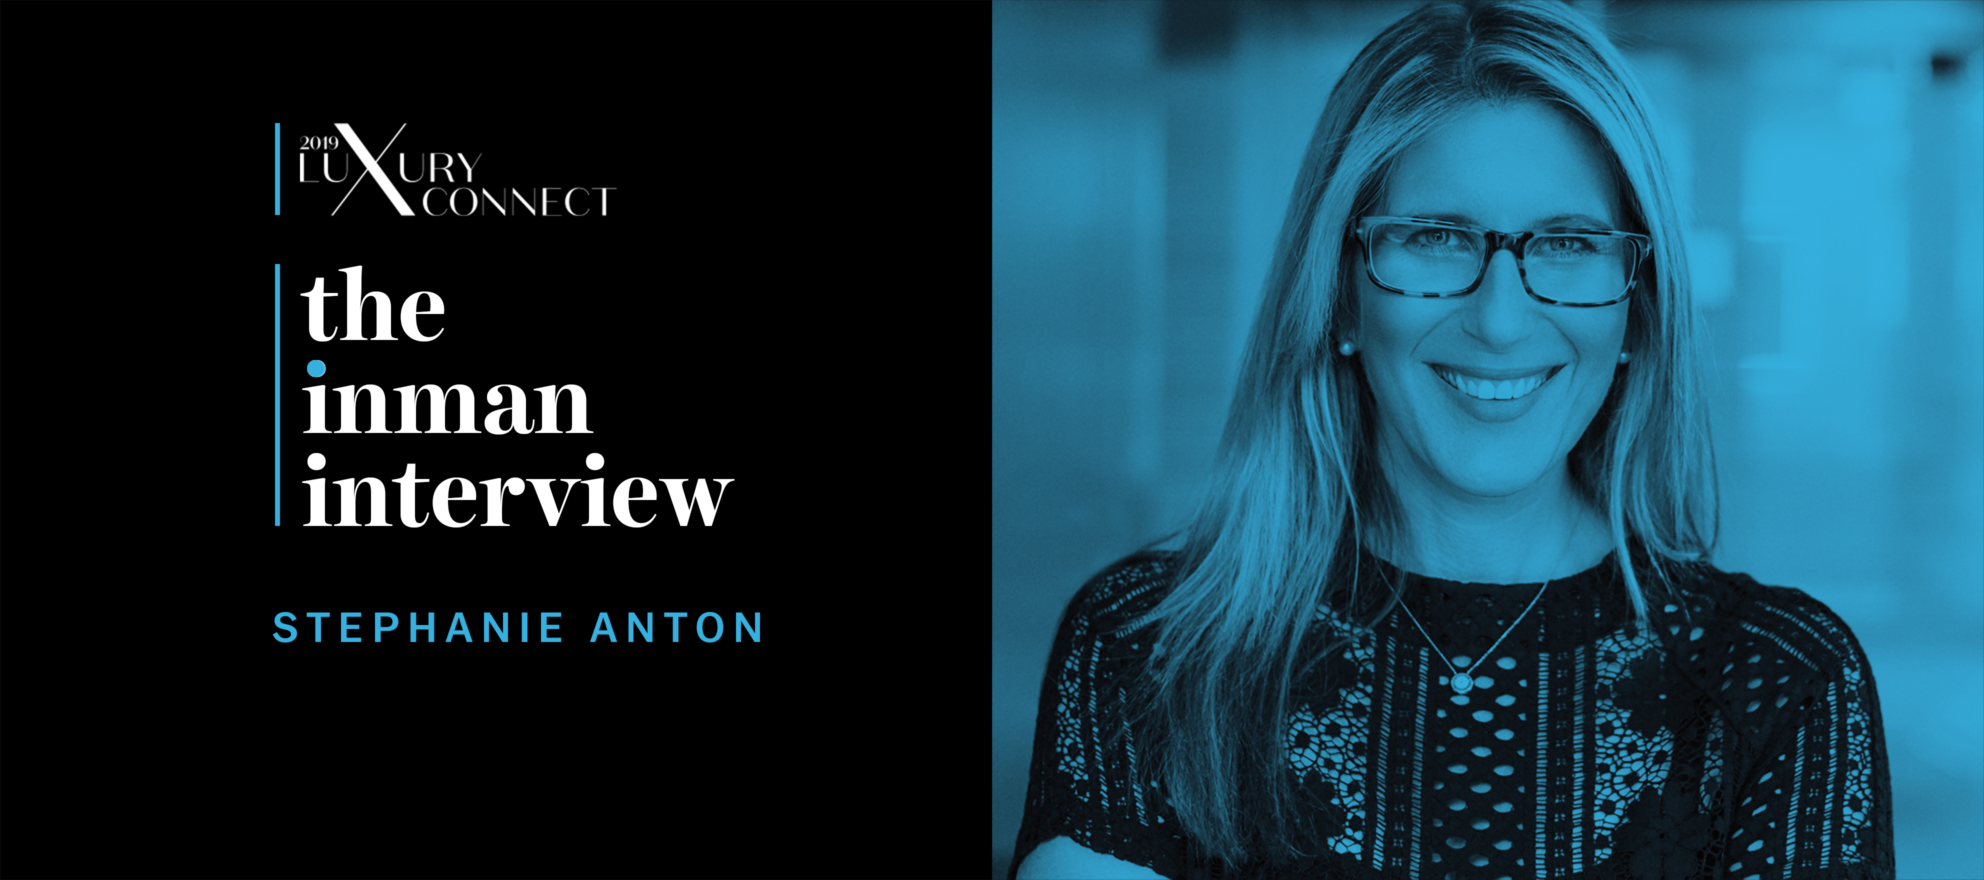 Stephanie Anton reveals where luxury marketing is headed